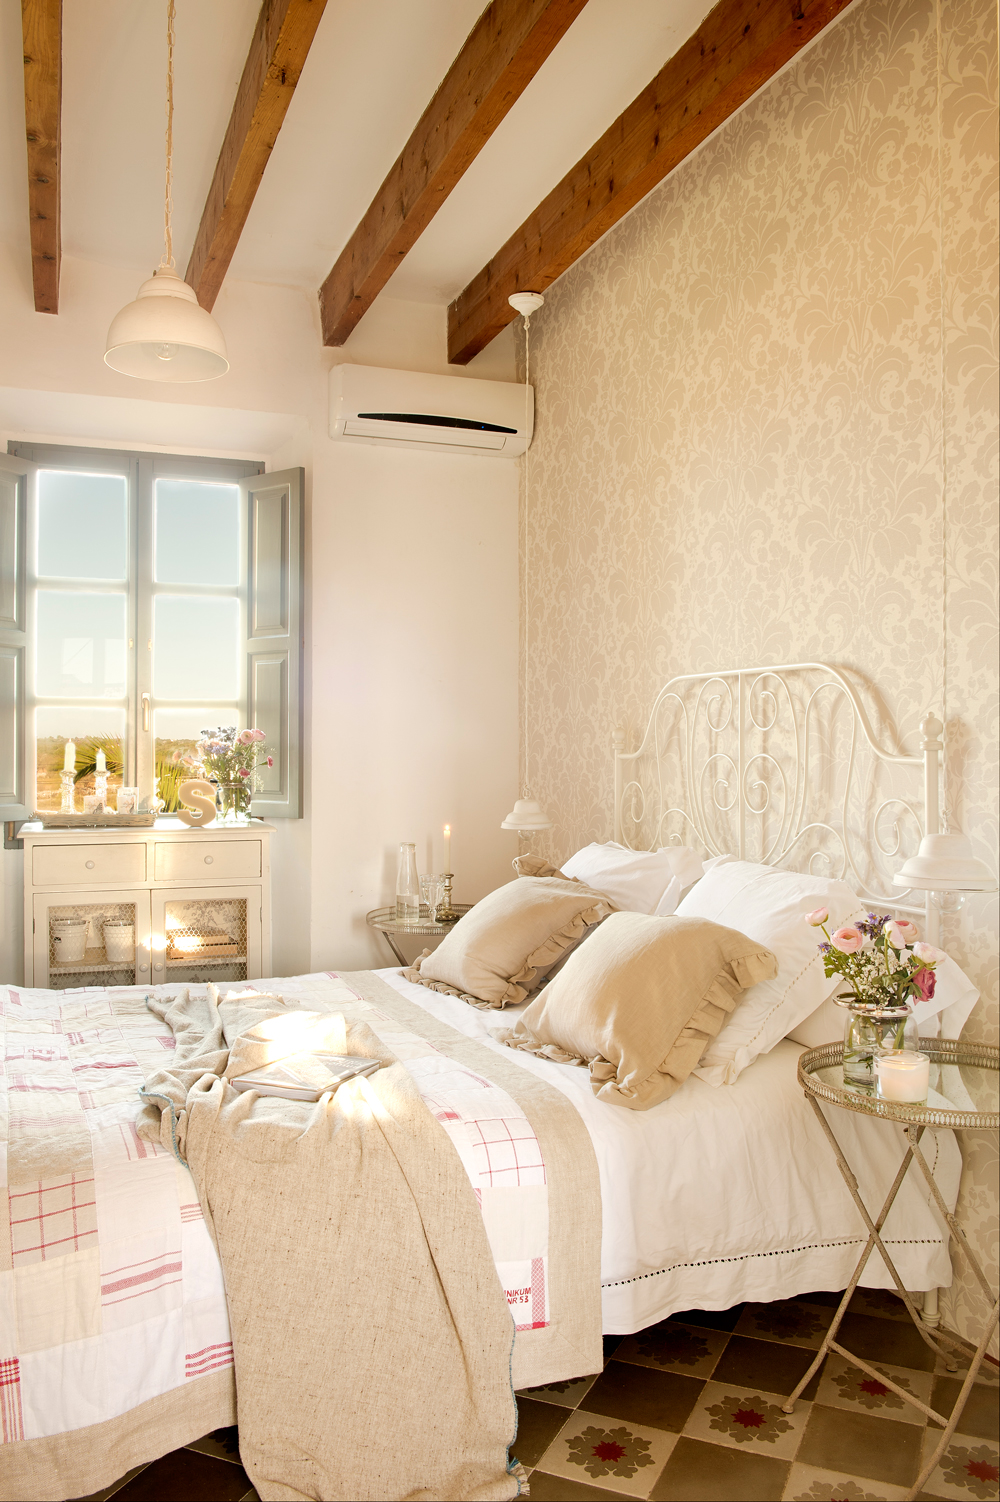 Decora tu dormitorio con estilo vintage for Ideas para decorar un dormitorio de matrimonio